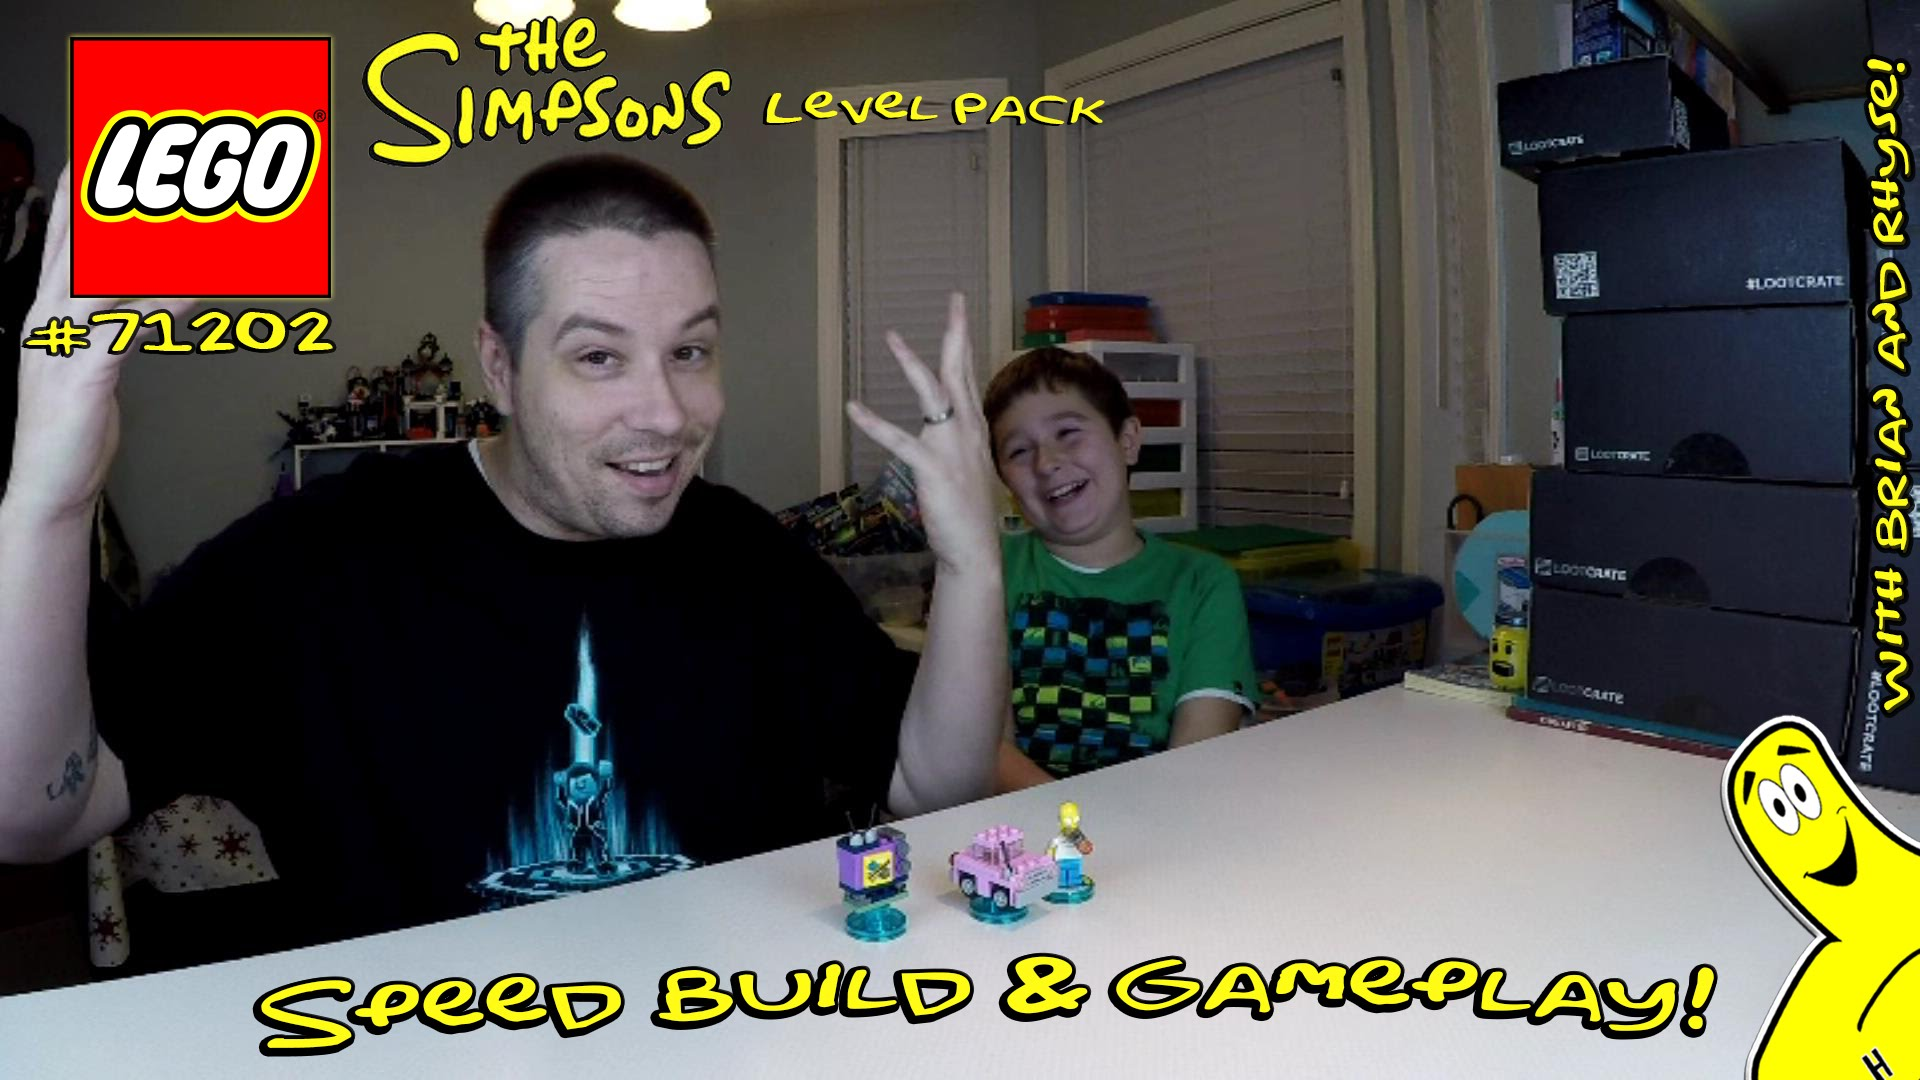 Lego Dimensions: #71202 Simpsons LEVEL Pack Unboxing/SpeedBuild/Gameplay – HTG